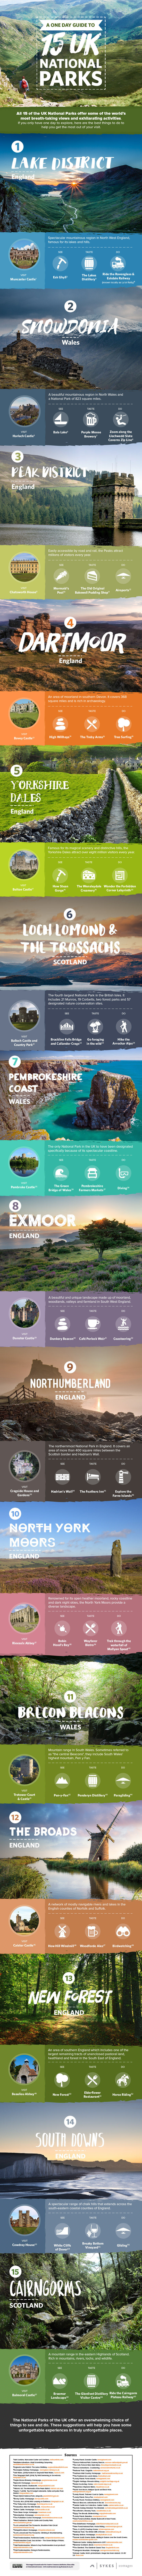 A one day guide to all 15 parks National Parks in the United Kingdom (England, Wales, Scotland) - dales and downs, heaths and moors, rocky coastline and mountains, history and stunning scenery